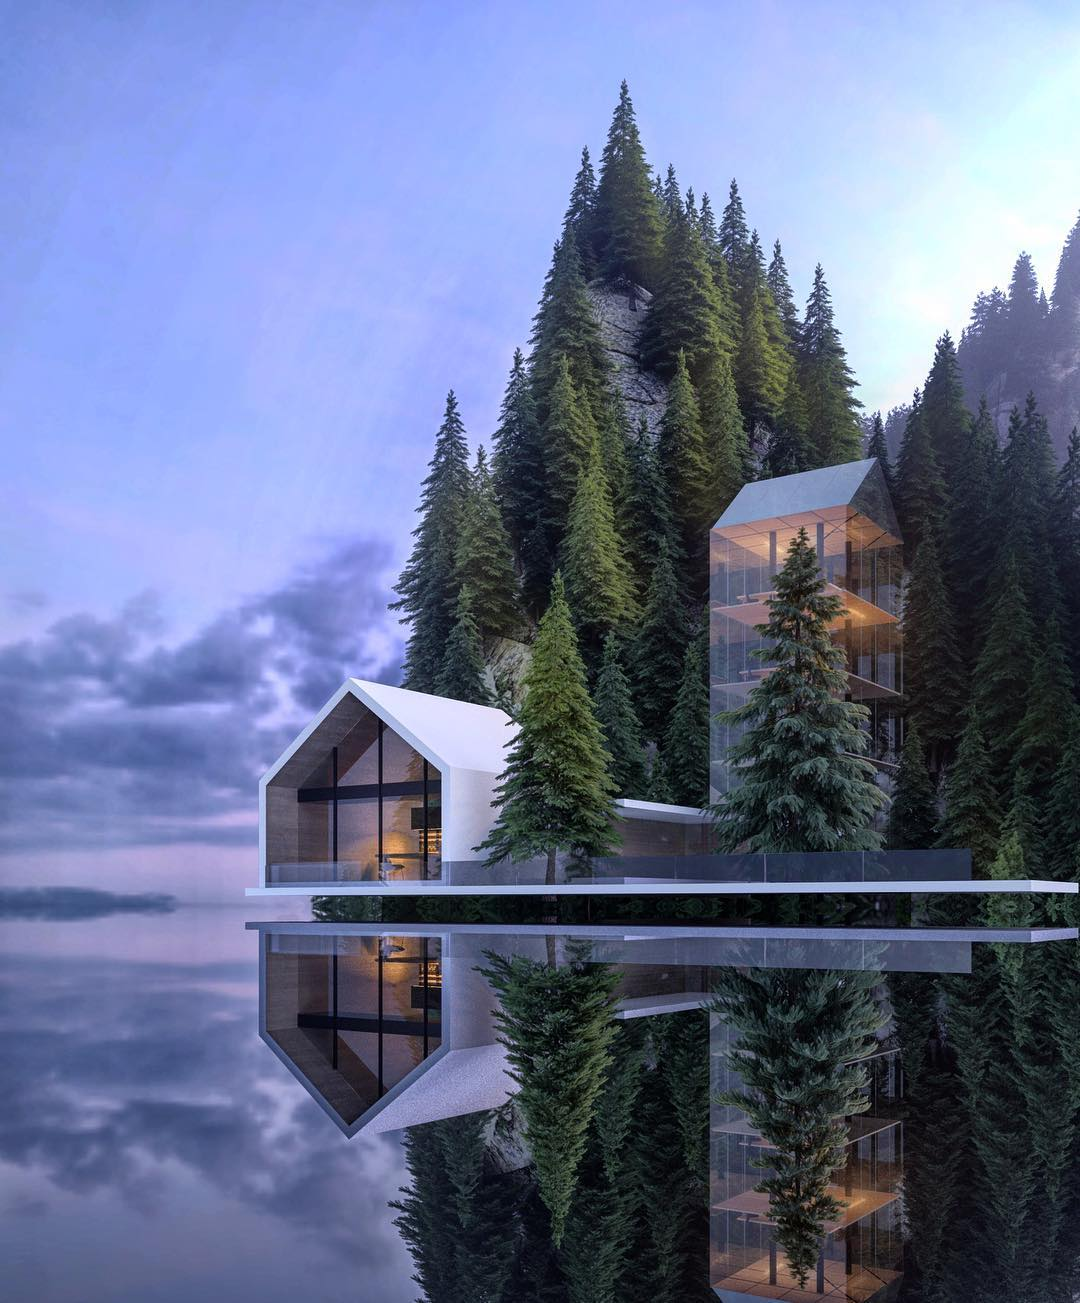 Home Design 3d 2 Story Alexander Nerovnya Architecture By The Lake Trendland